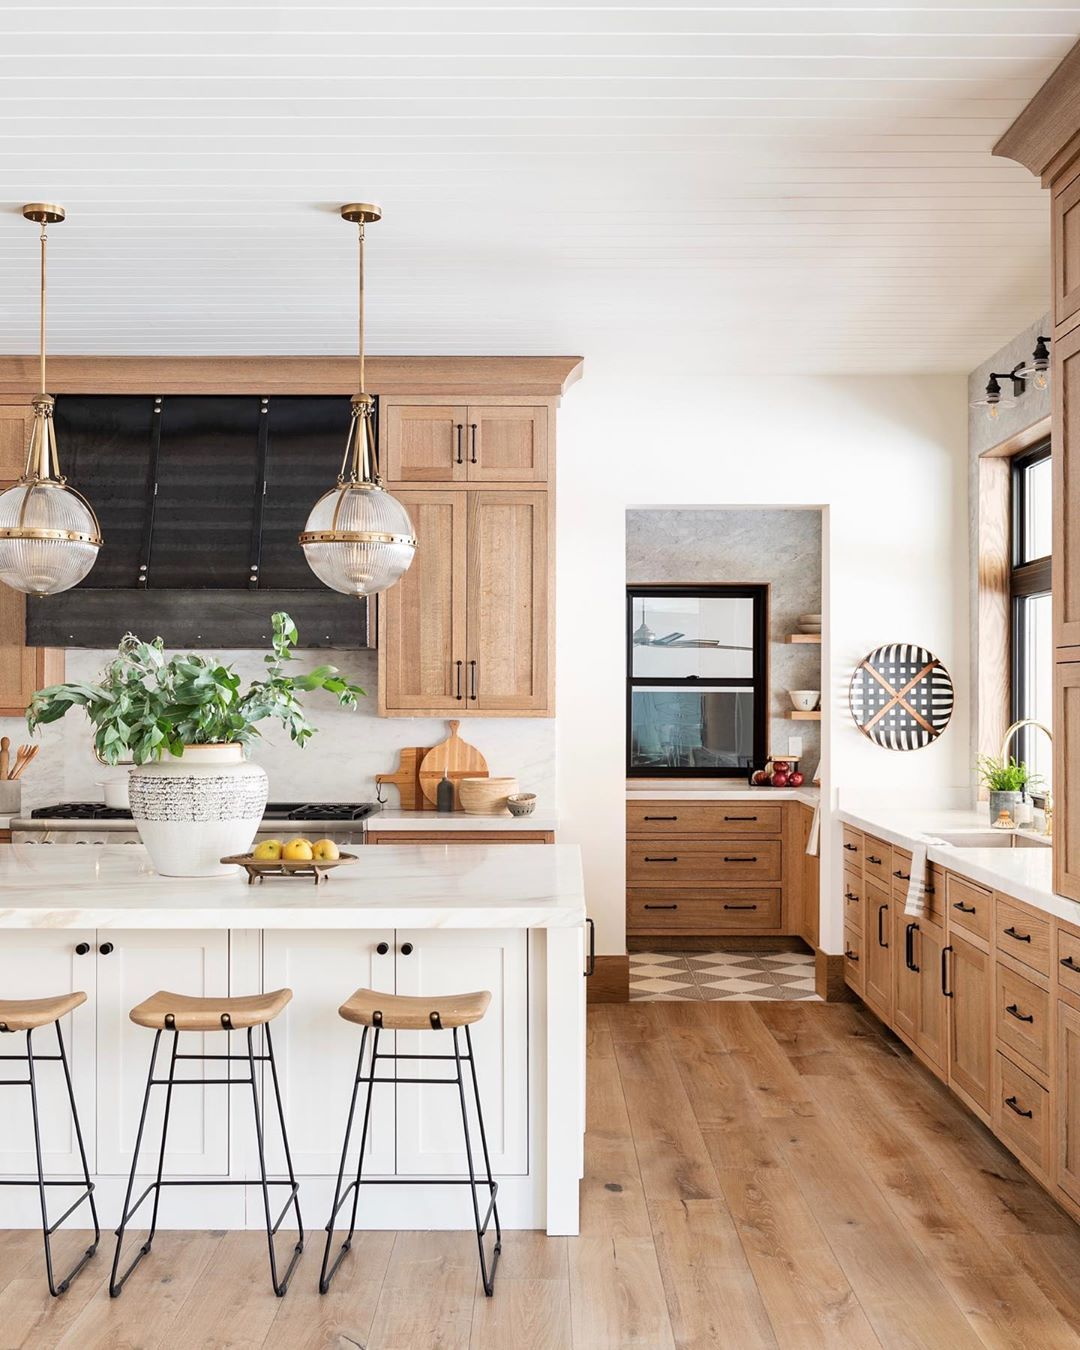 "Studio McGee on Instagram: ""Today on the blog we're talking about this kitchen! If you think this view is pretty, you need to see the inside of the pantry. You know…"""